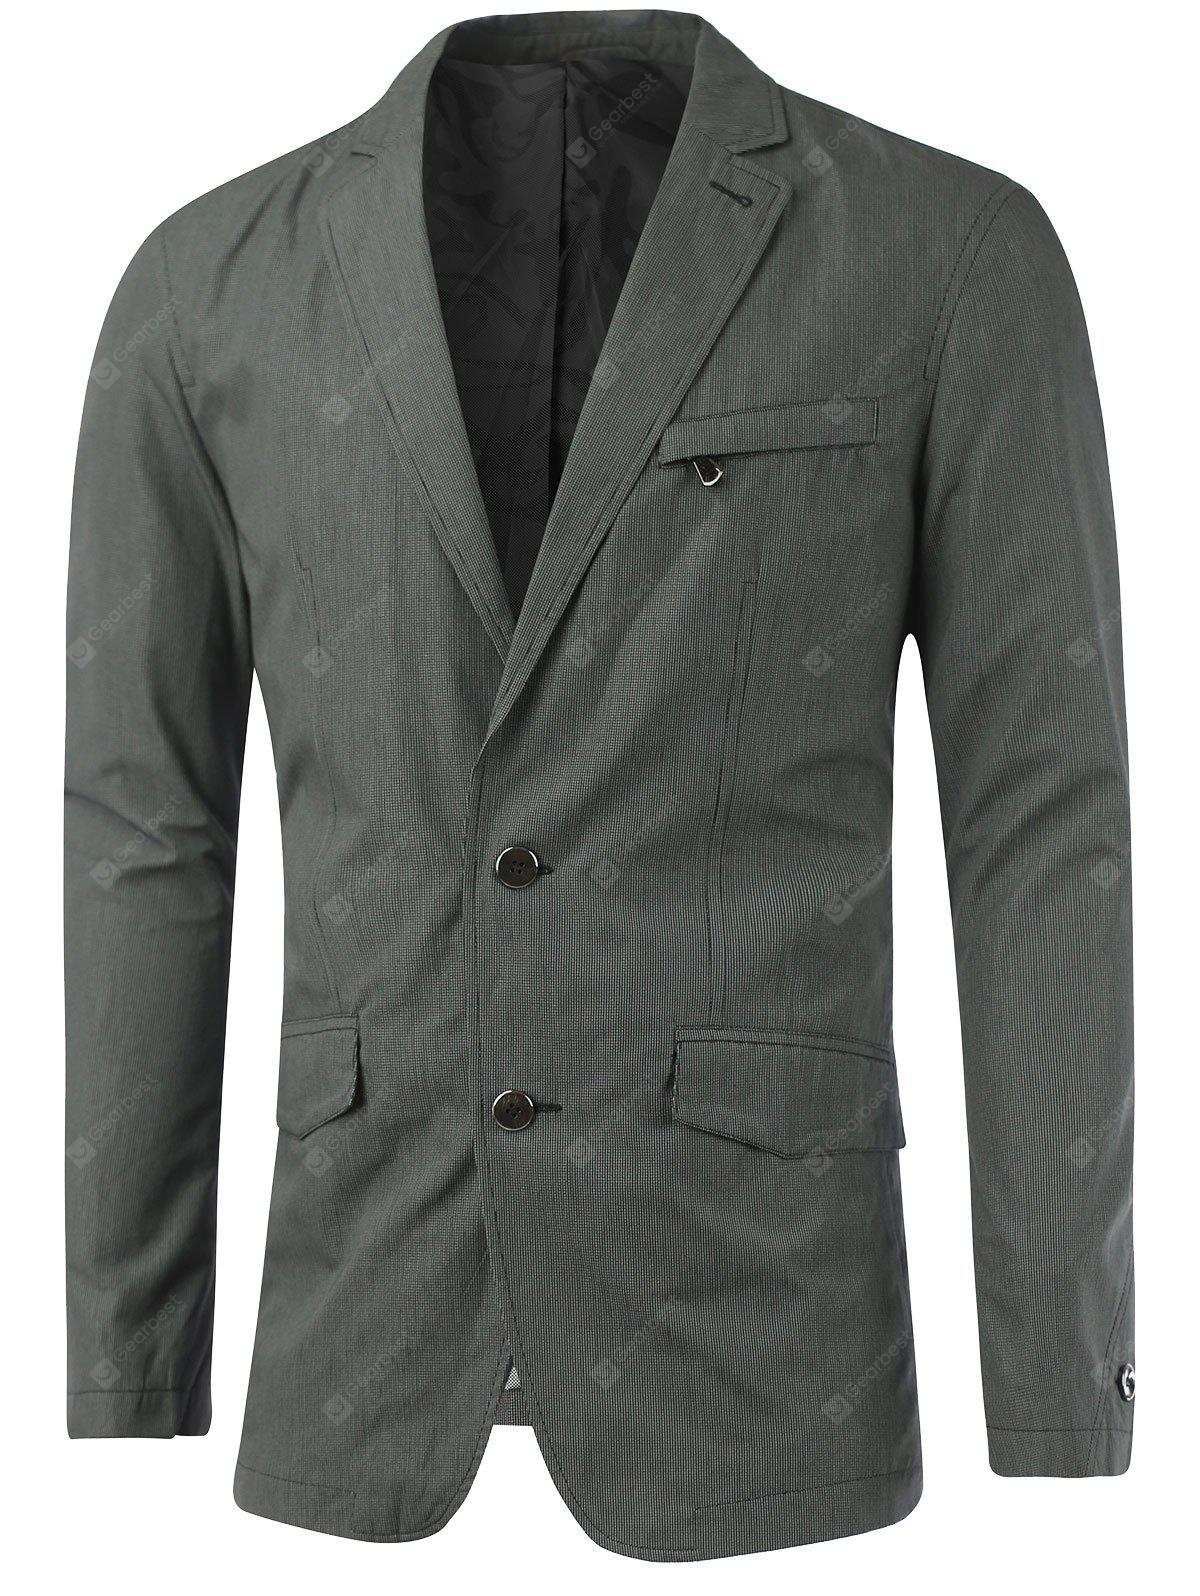 Zip Pocket asole Notch risvolto Texture Blazer